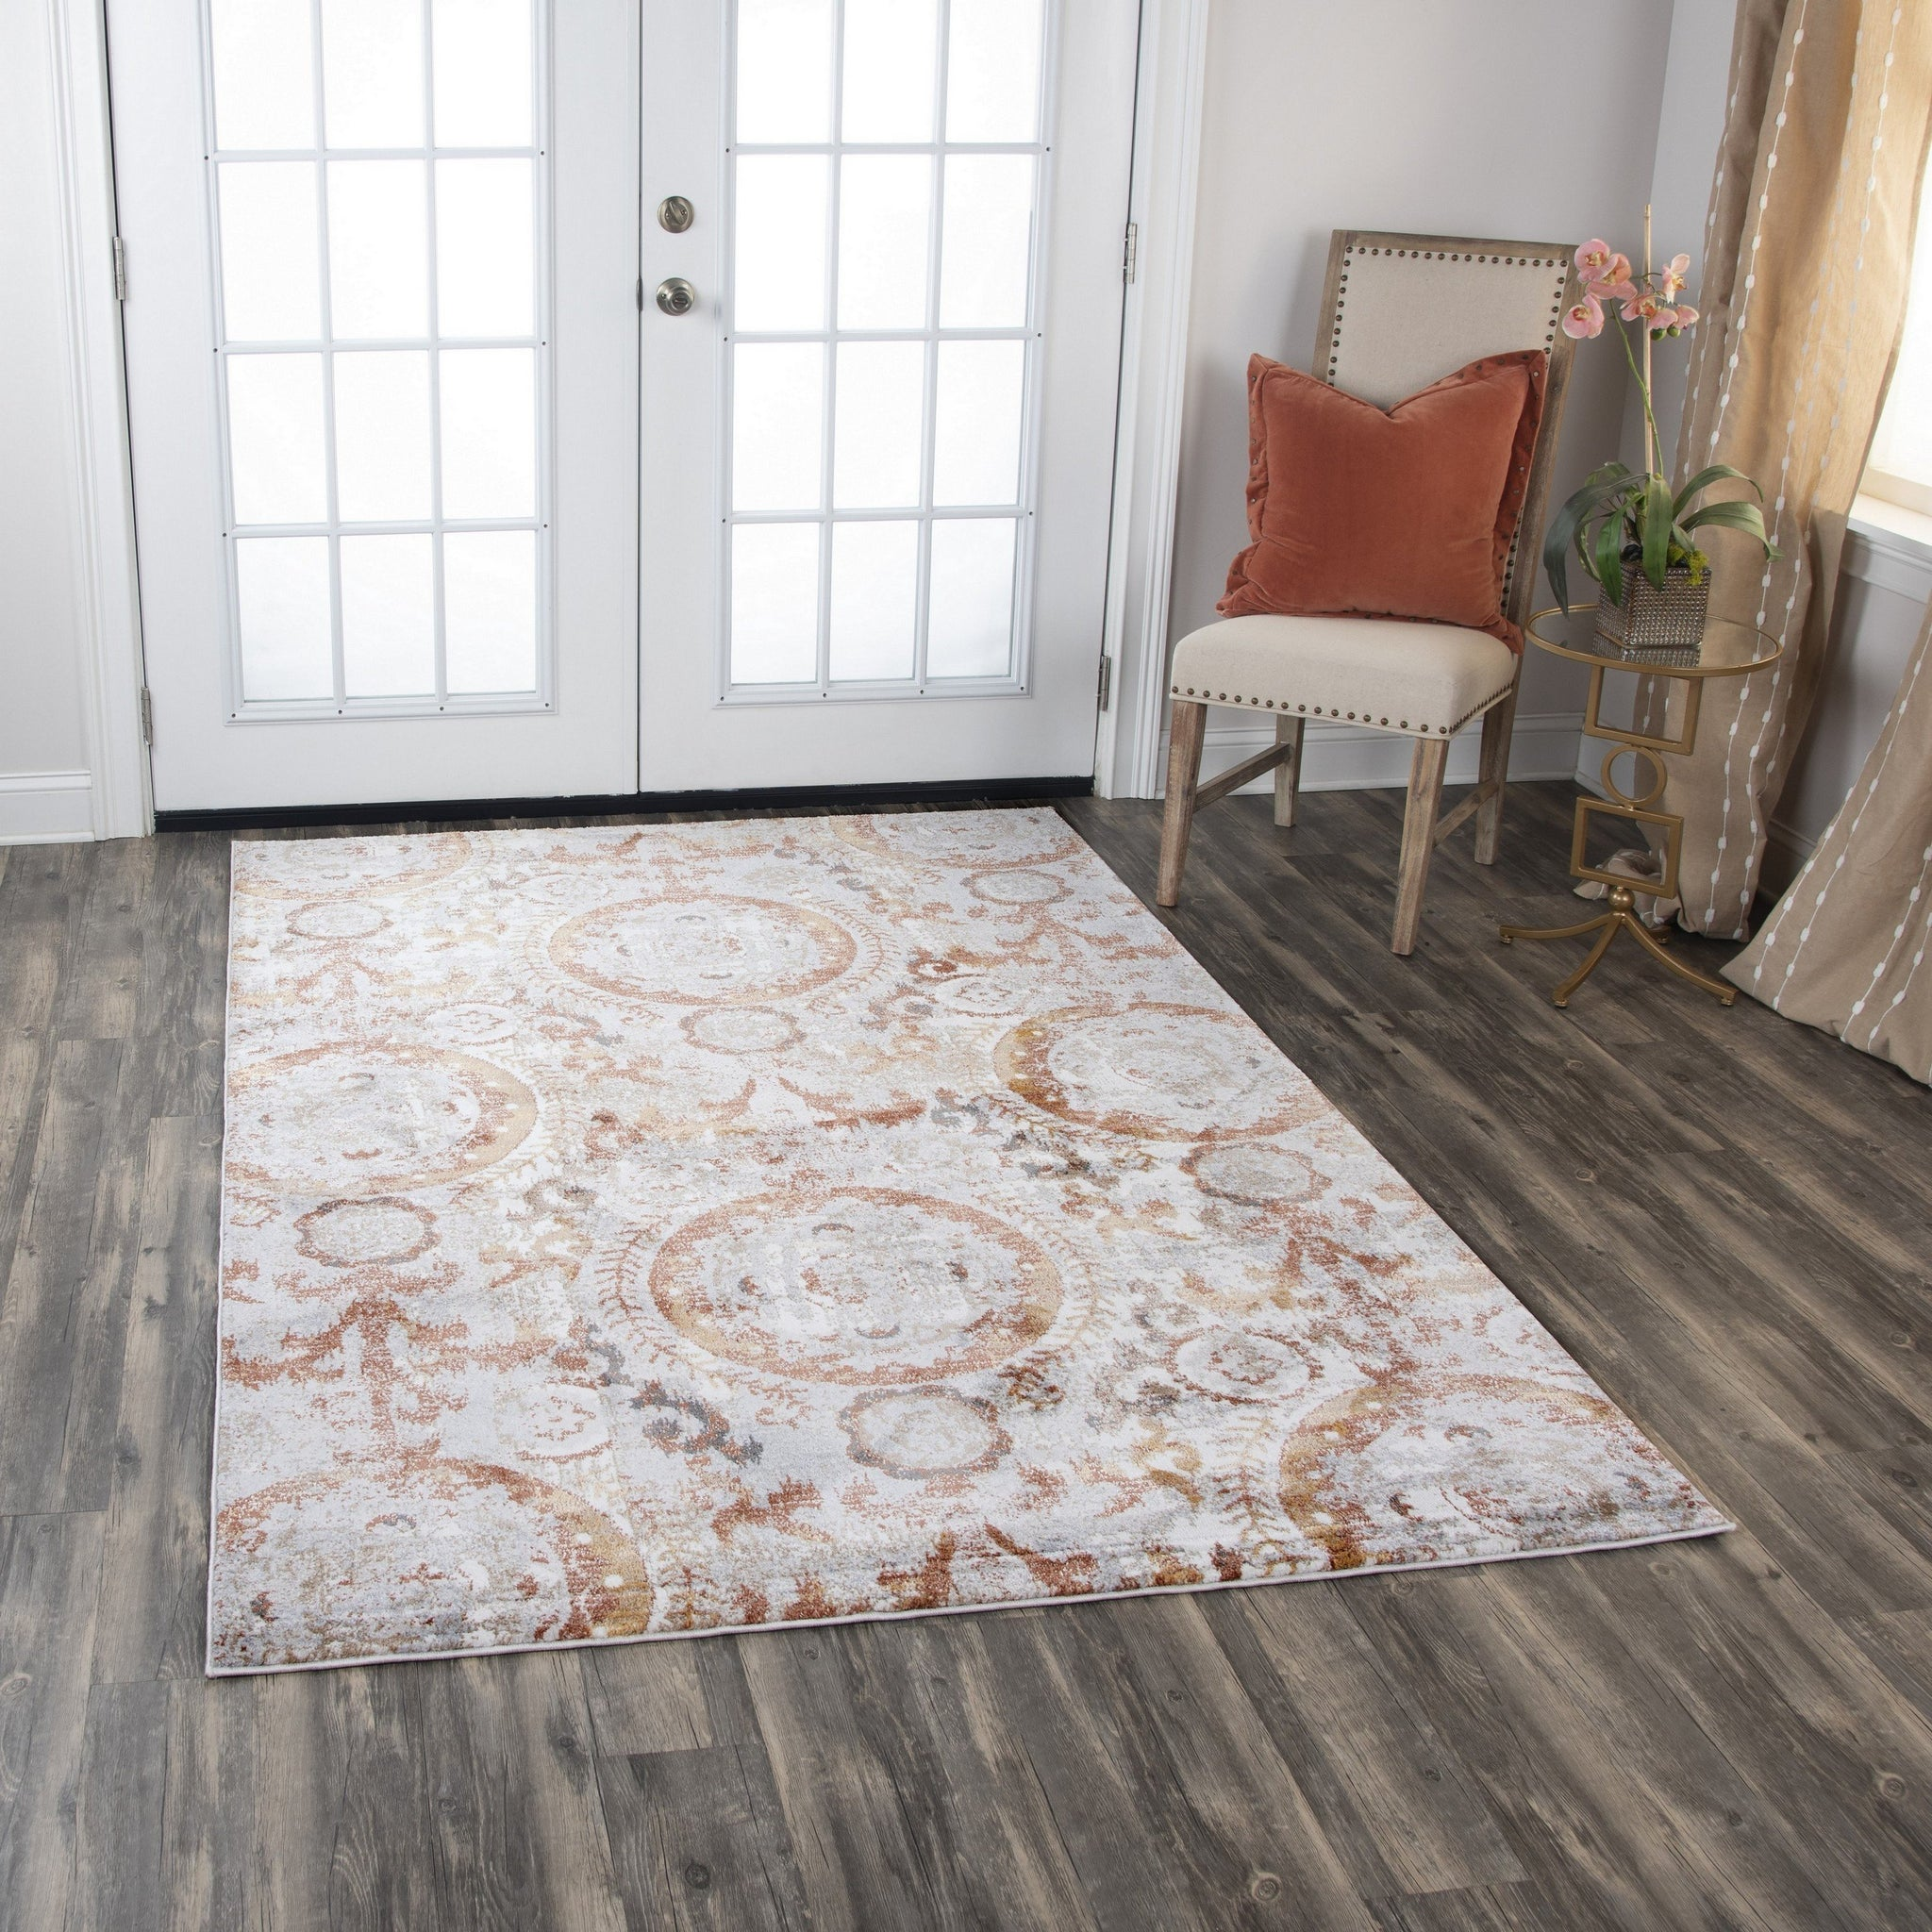 Rizzy Home Area Rugs Bristol Area Rugs BRS109 Beige-Copper Rizzy Home Turkey